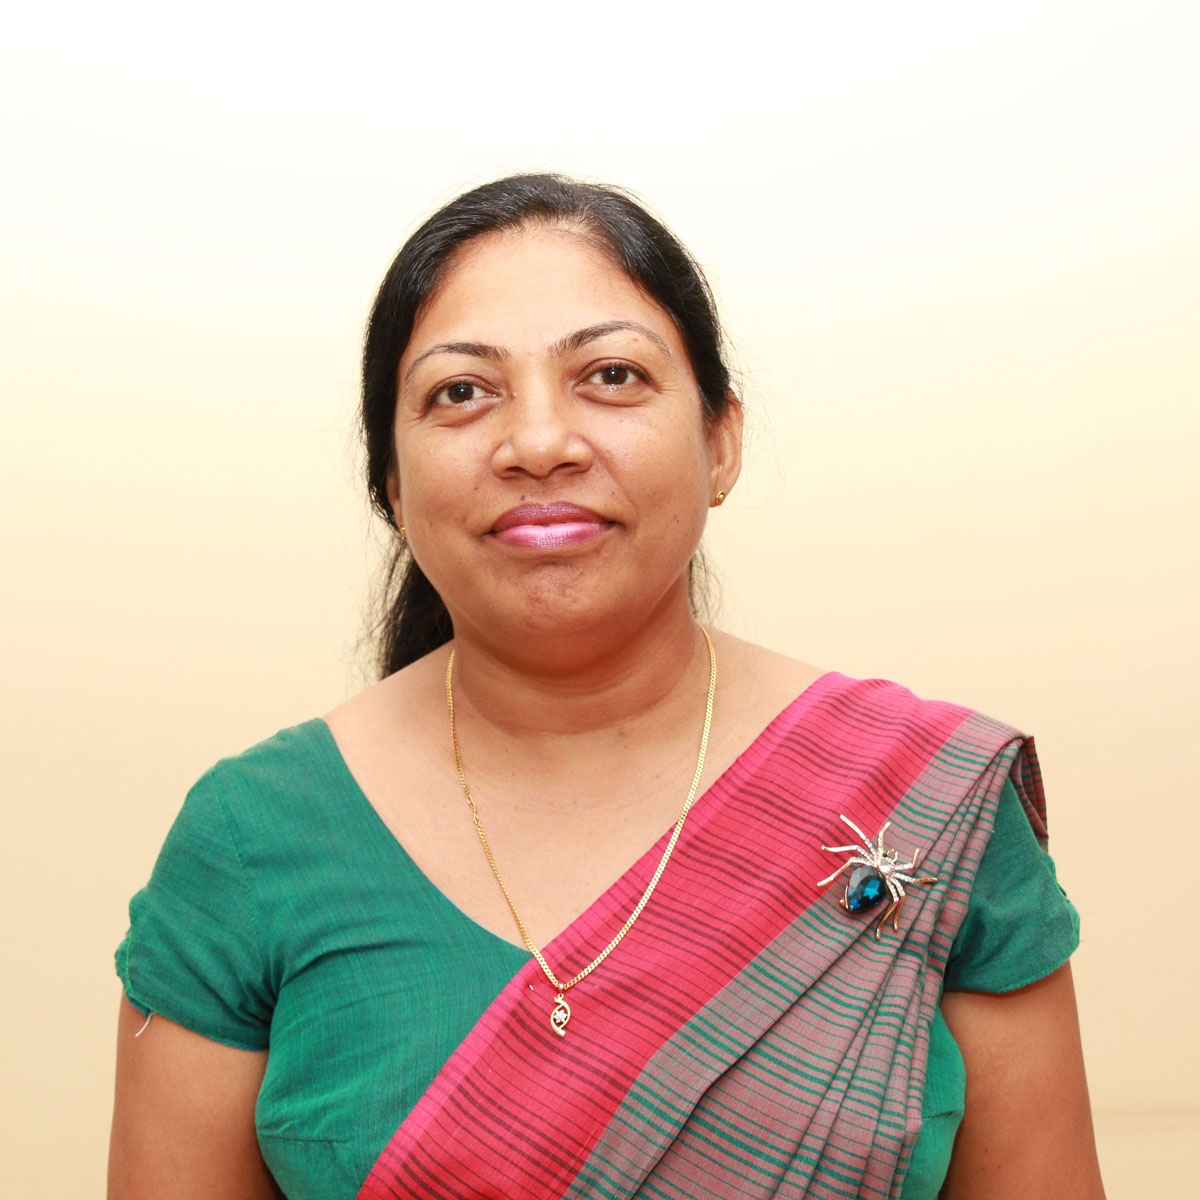 Ms. A.H. Attanayake